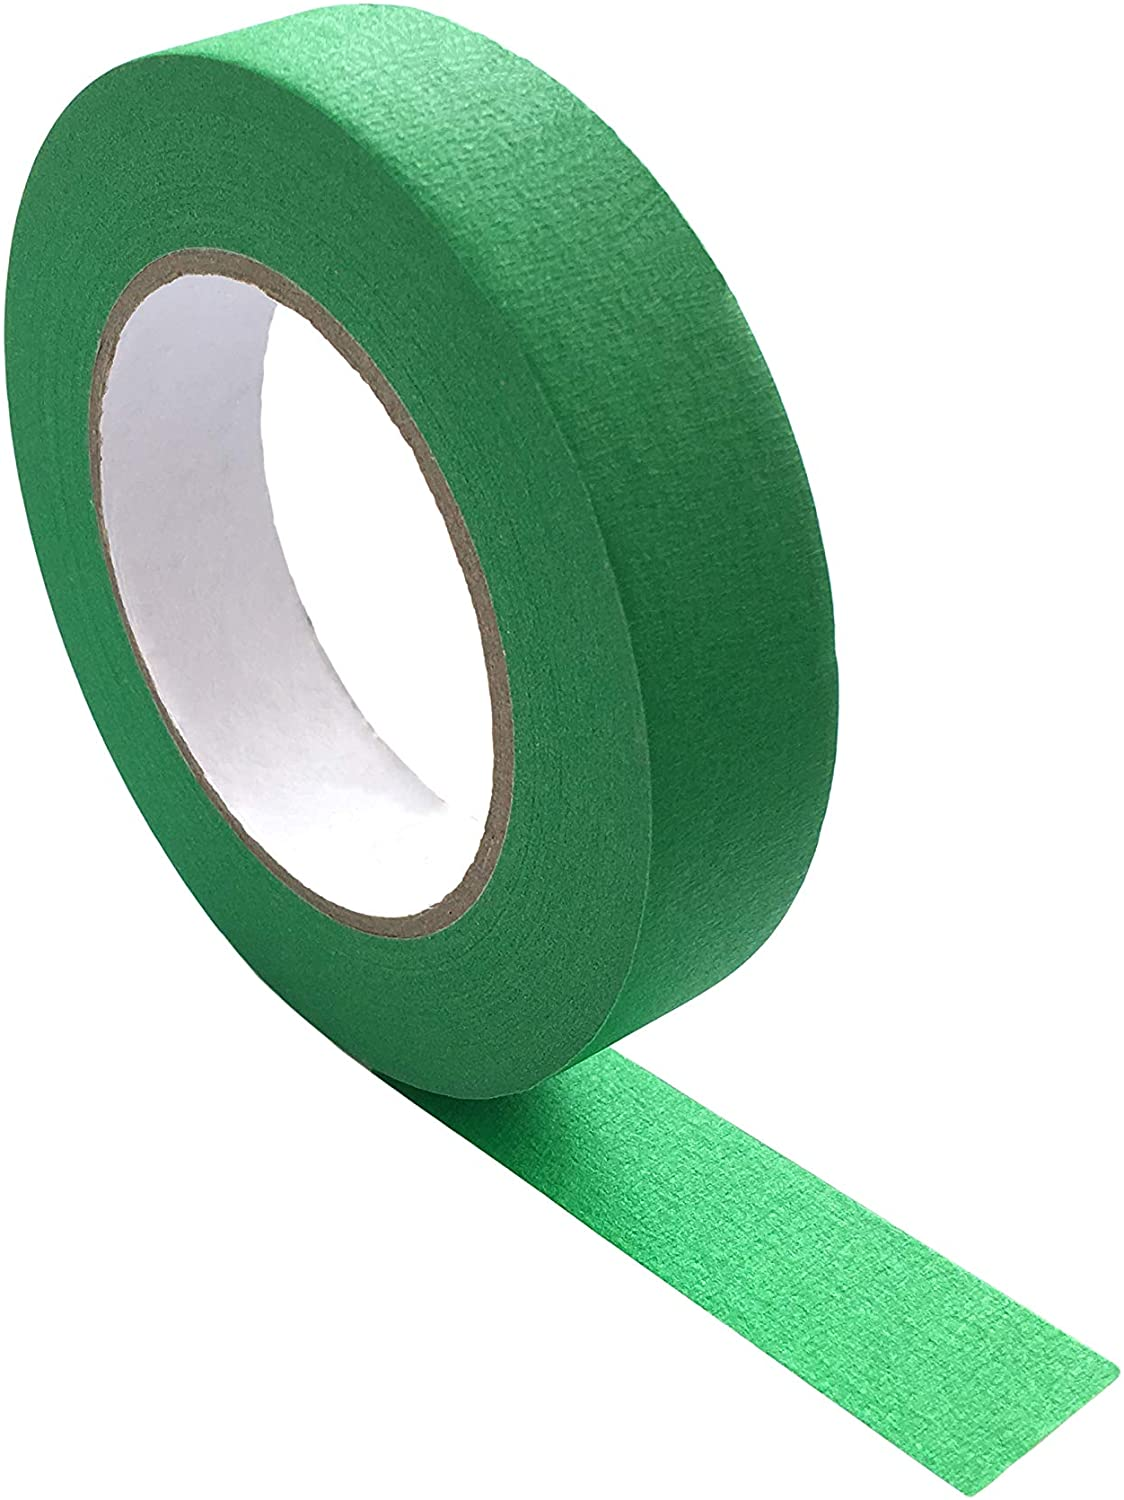 Green Color Tape for Crafting, 1 inch x 60 Yards, Masking and Washi Style Adhesive, Arts, Crafts, DIY Projects, Labeling, Moving, Sticks to Cloth, Paper or Metal